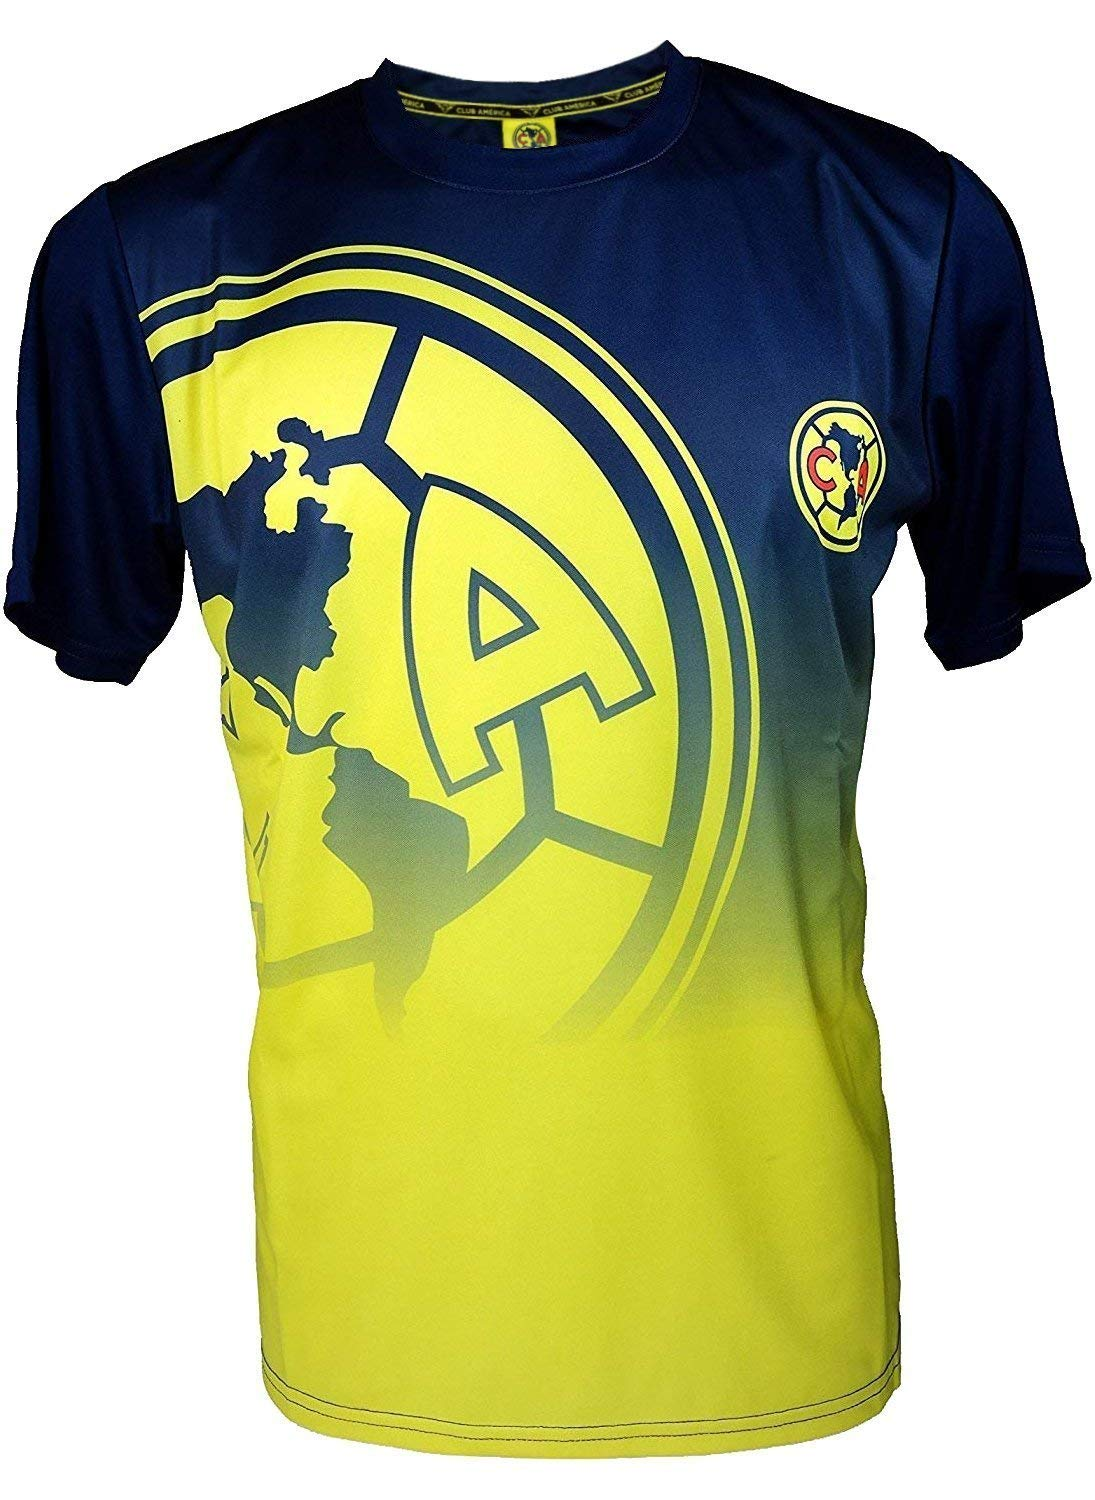 Club America Soccer Team Luxury Twin Sheet 3 piece Set featuring Playing Eagle Mascot JPI